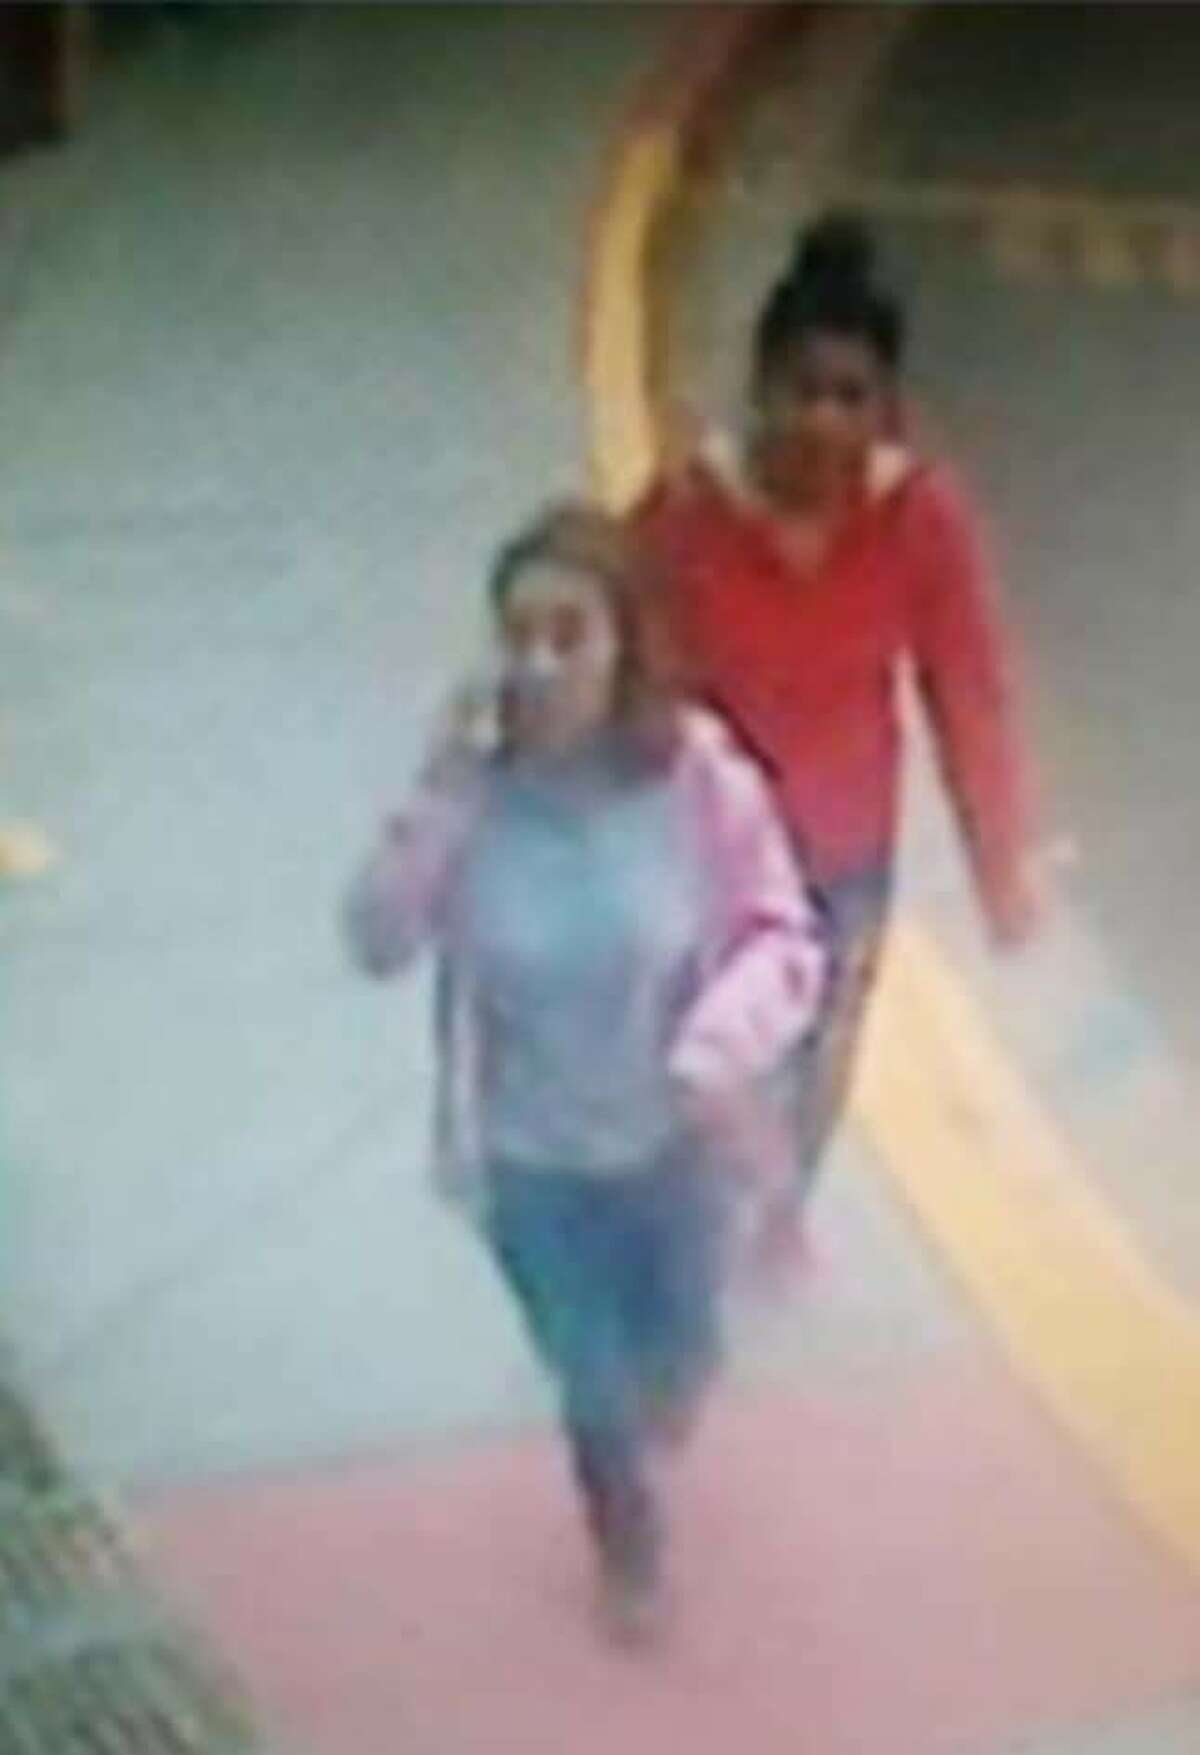 Katherine Mena was last seen with two females, who are pictured in this surveillance video image released by Laredo PD.